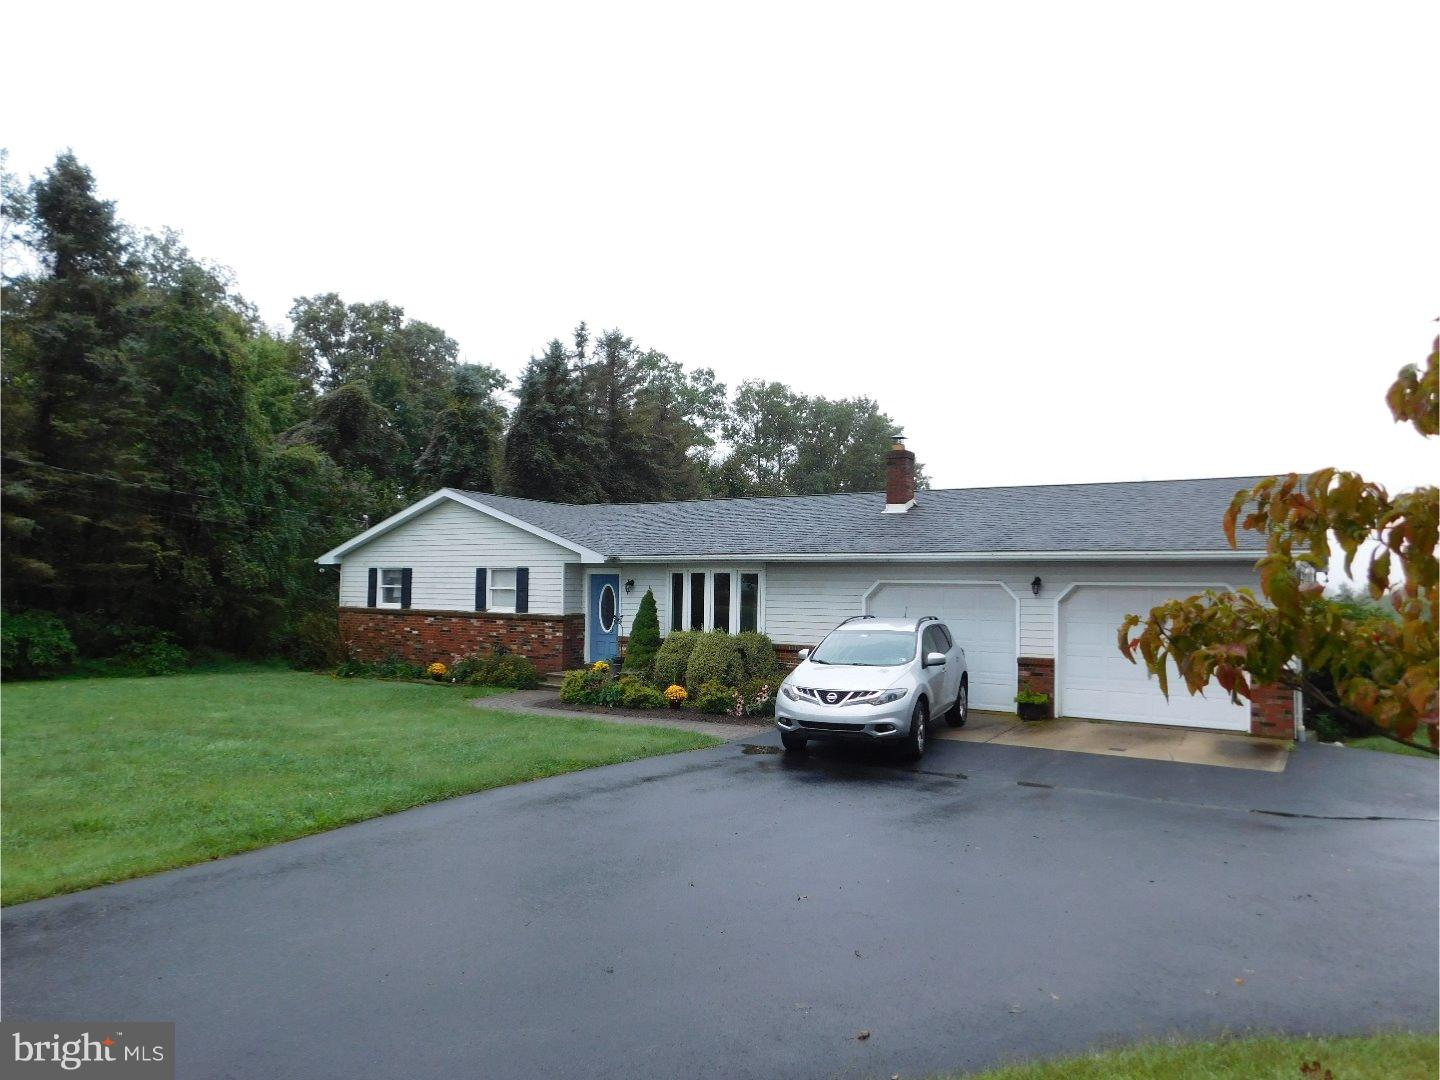 314 ARCHERY CLUB ROAD, NEW RINGGOLD, PA 17960